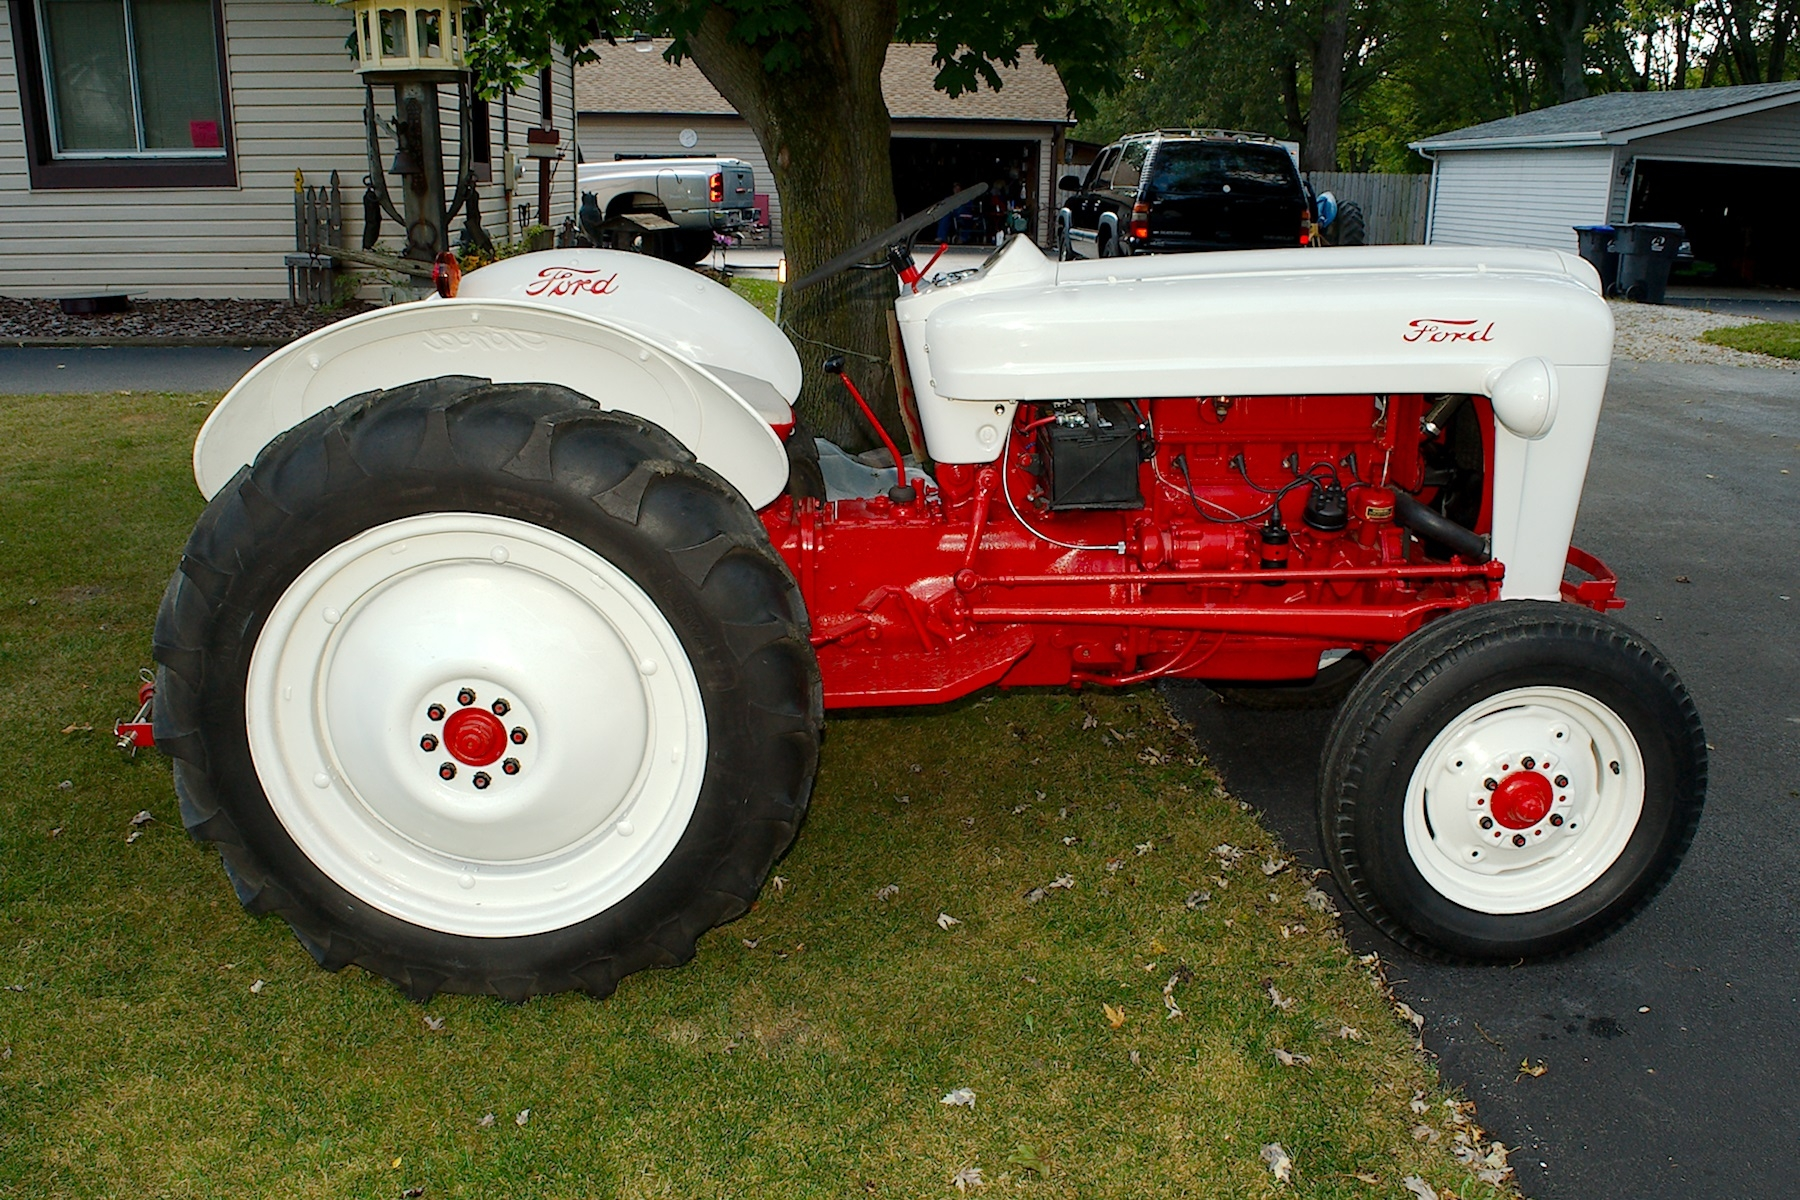 1953 Ford Golden Jubilee Antique Collectible Farm Tractor sale Buffalo Grove Deerfield Fox Lake Antioch